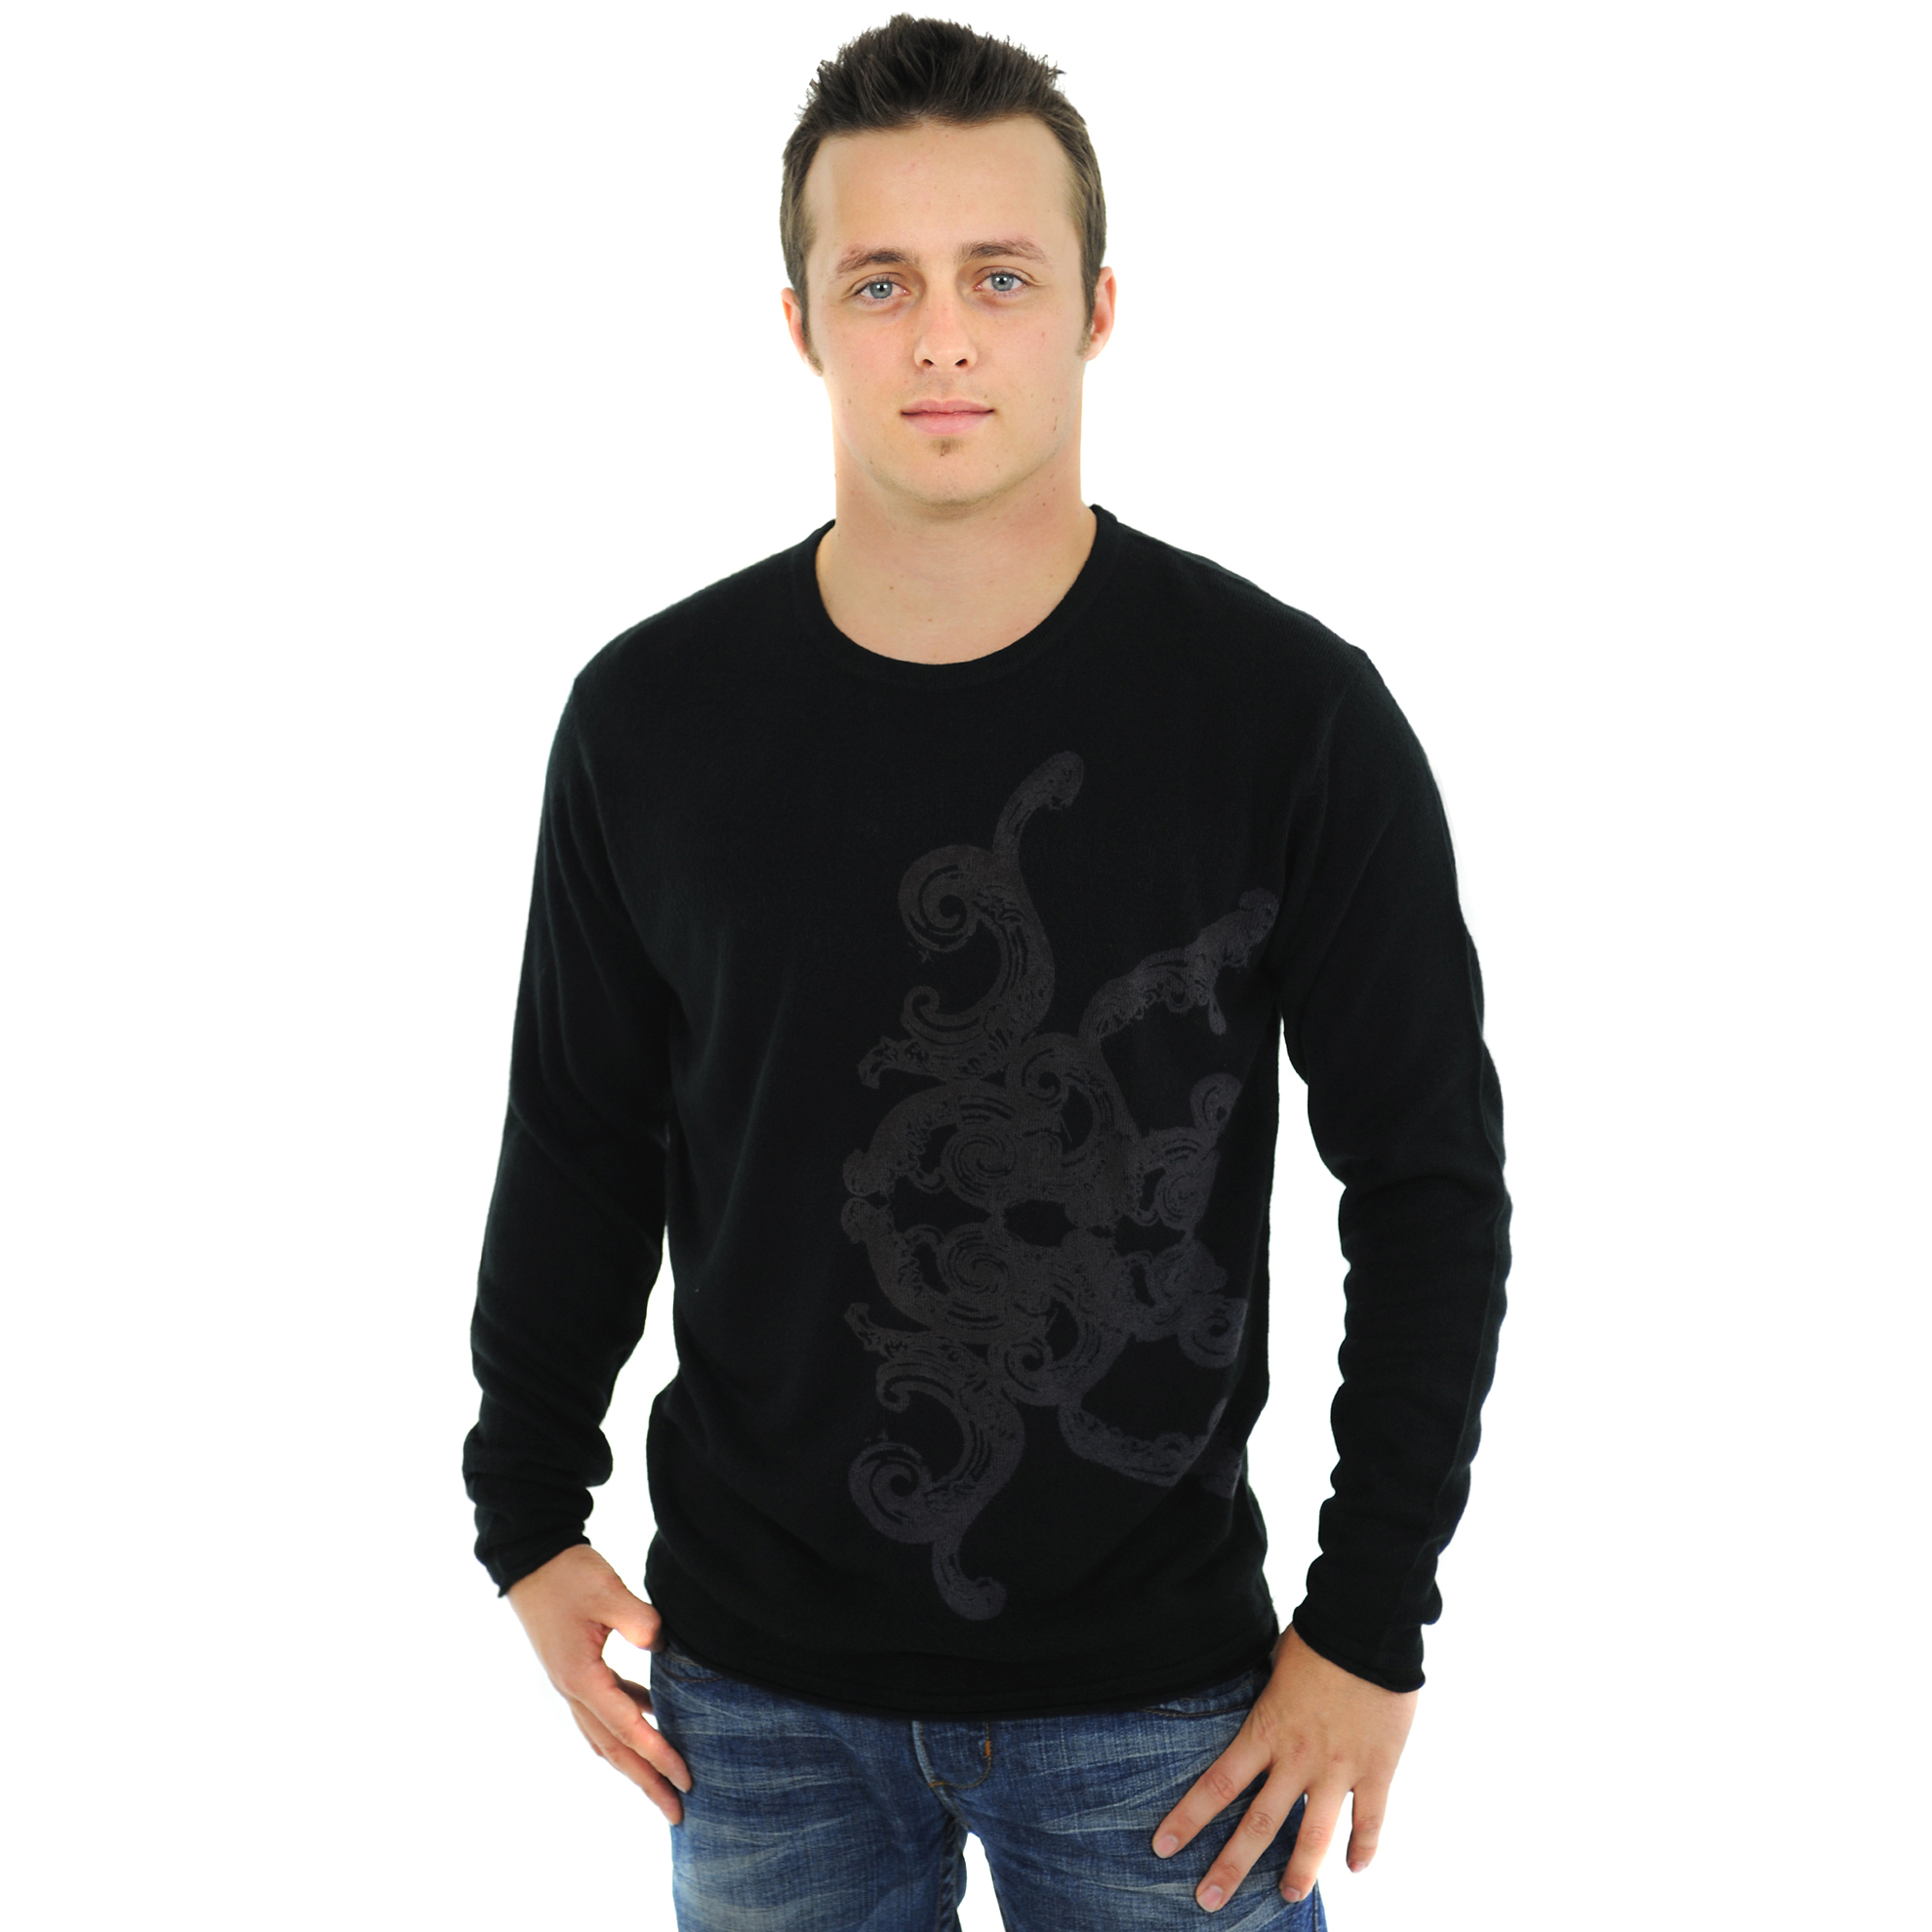 RAW-7 G09H03-KNIGHT RAW7 Men's 100% Acrylic Crewneck Sweater Knight Design - Black